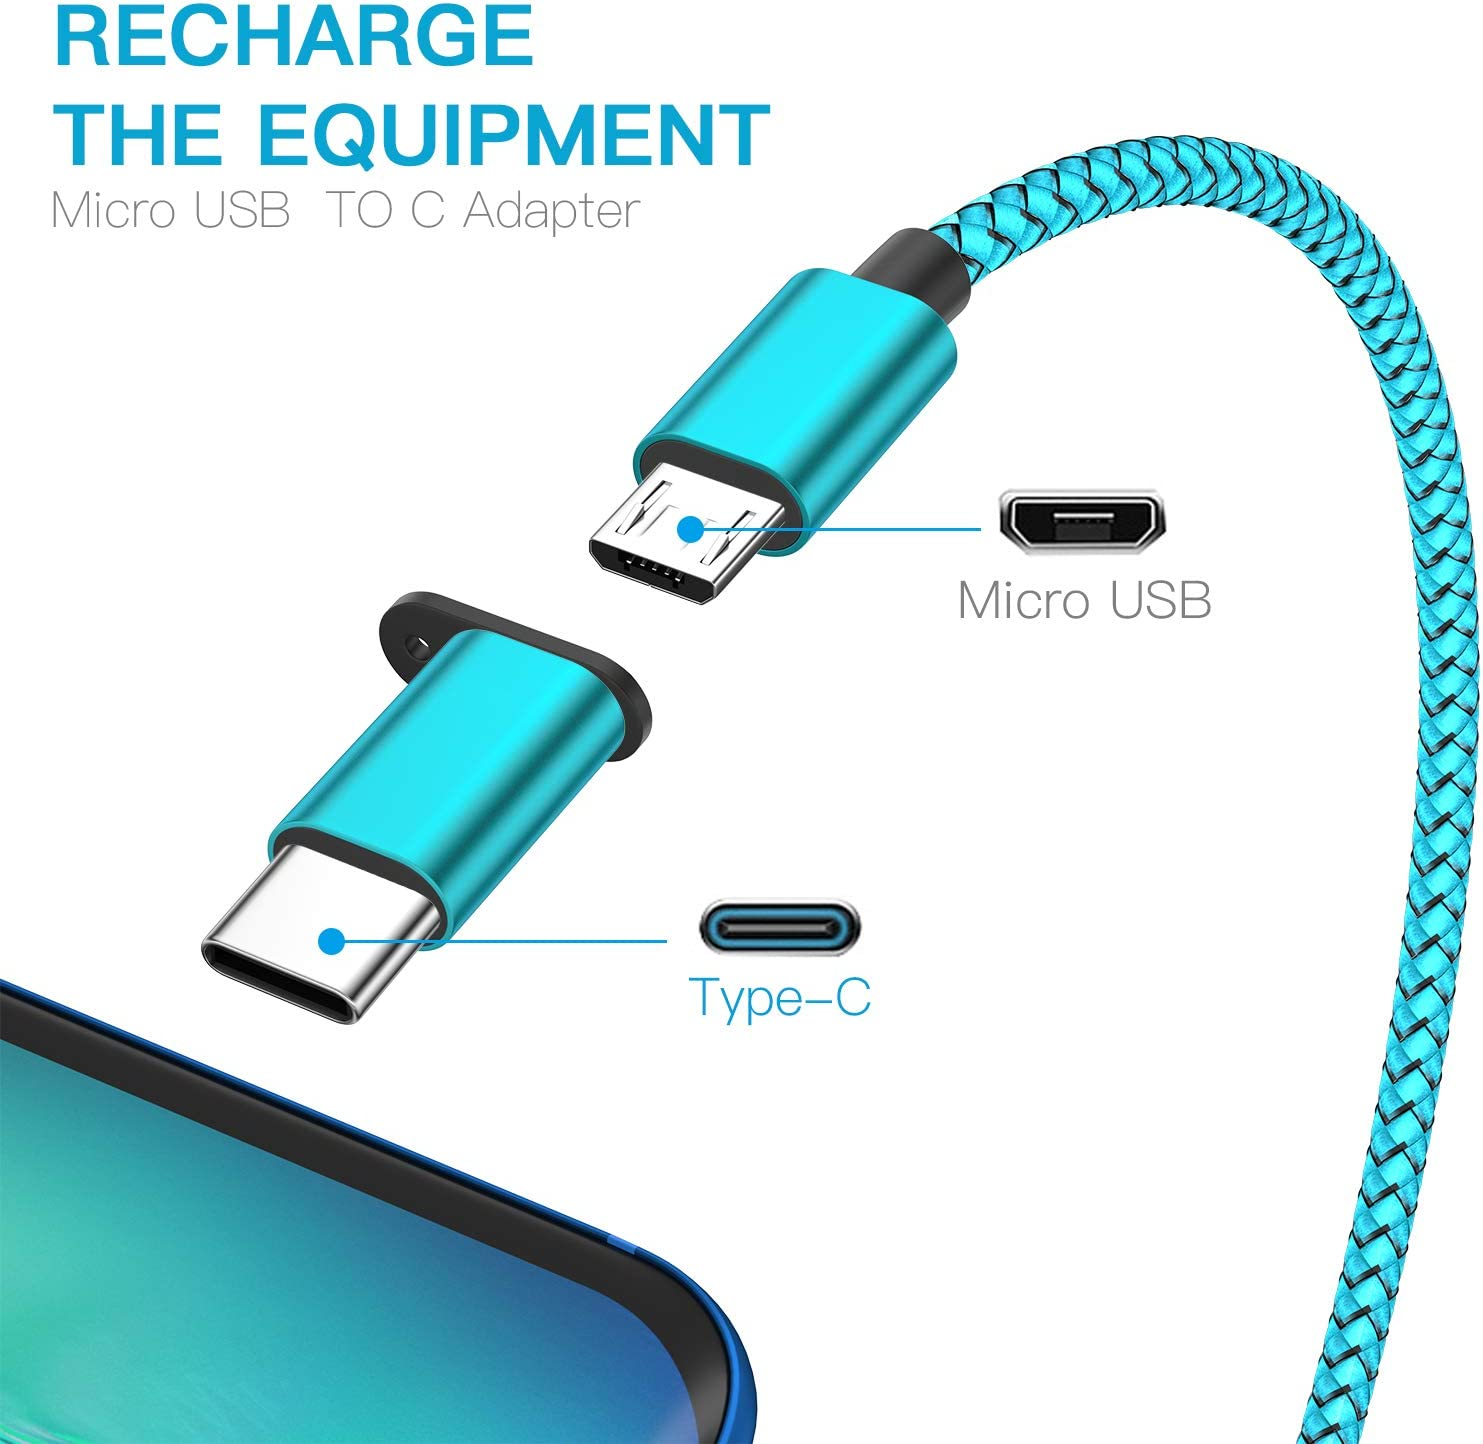 Nylon Braided Fast Charging Cord 6ft Compatible with Samsung Galaxy S10 S9 Note 9 8 S8 Plus,LG V30 V20 G6 G5,Google Pixel USB 2.0 USB Type C Cable OULUOQI USB C Cable 3 Pack Black Blue